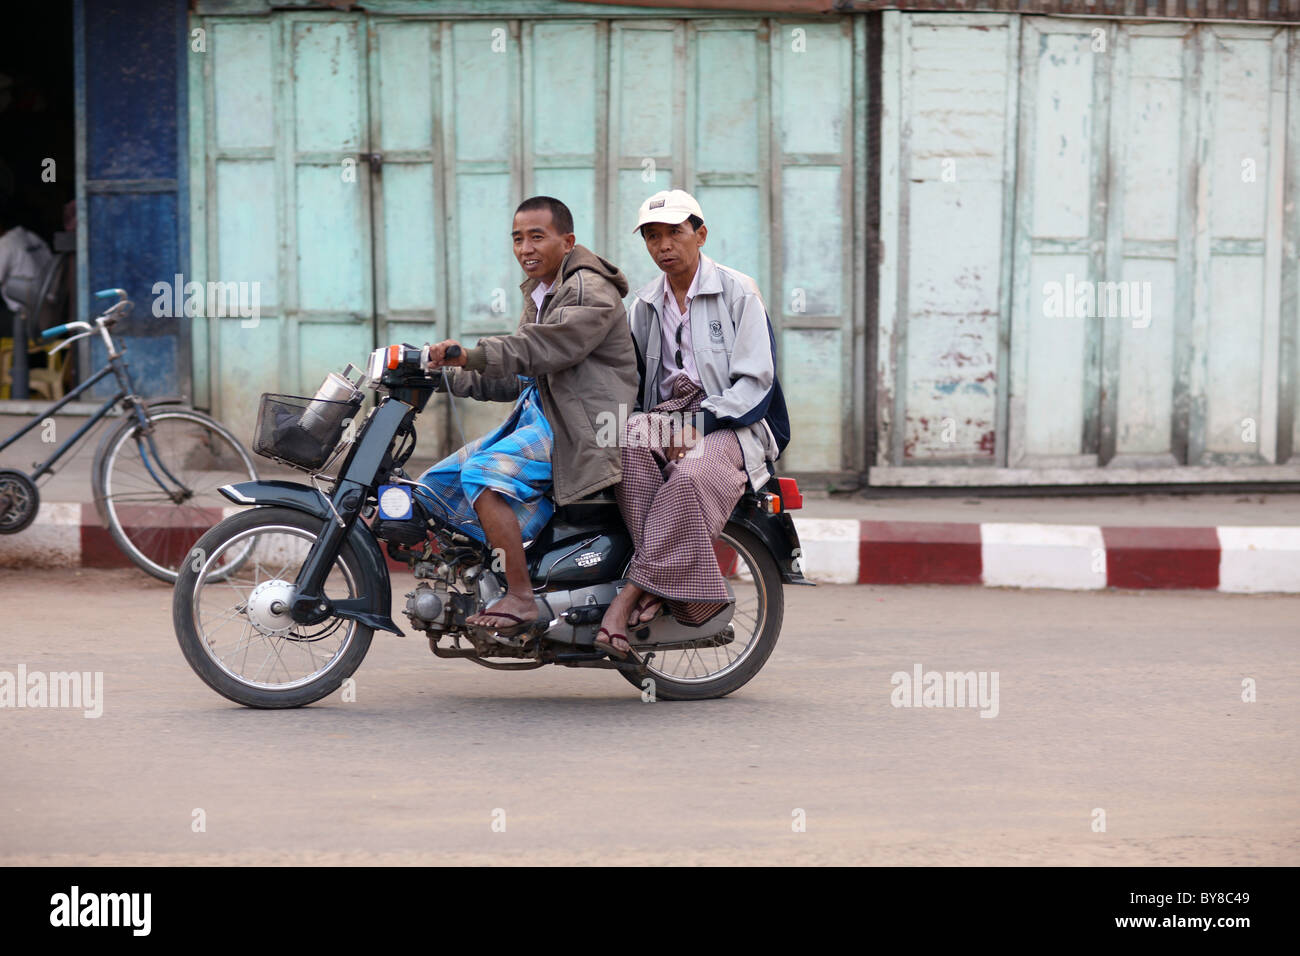 Two man on a bike - Stock Image